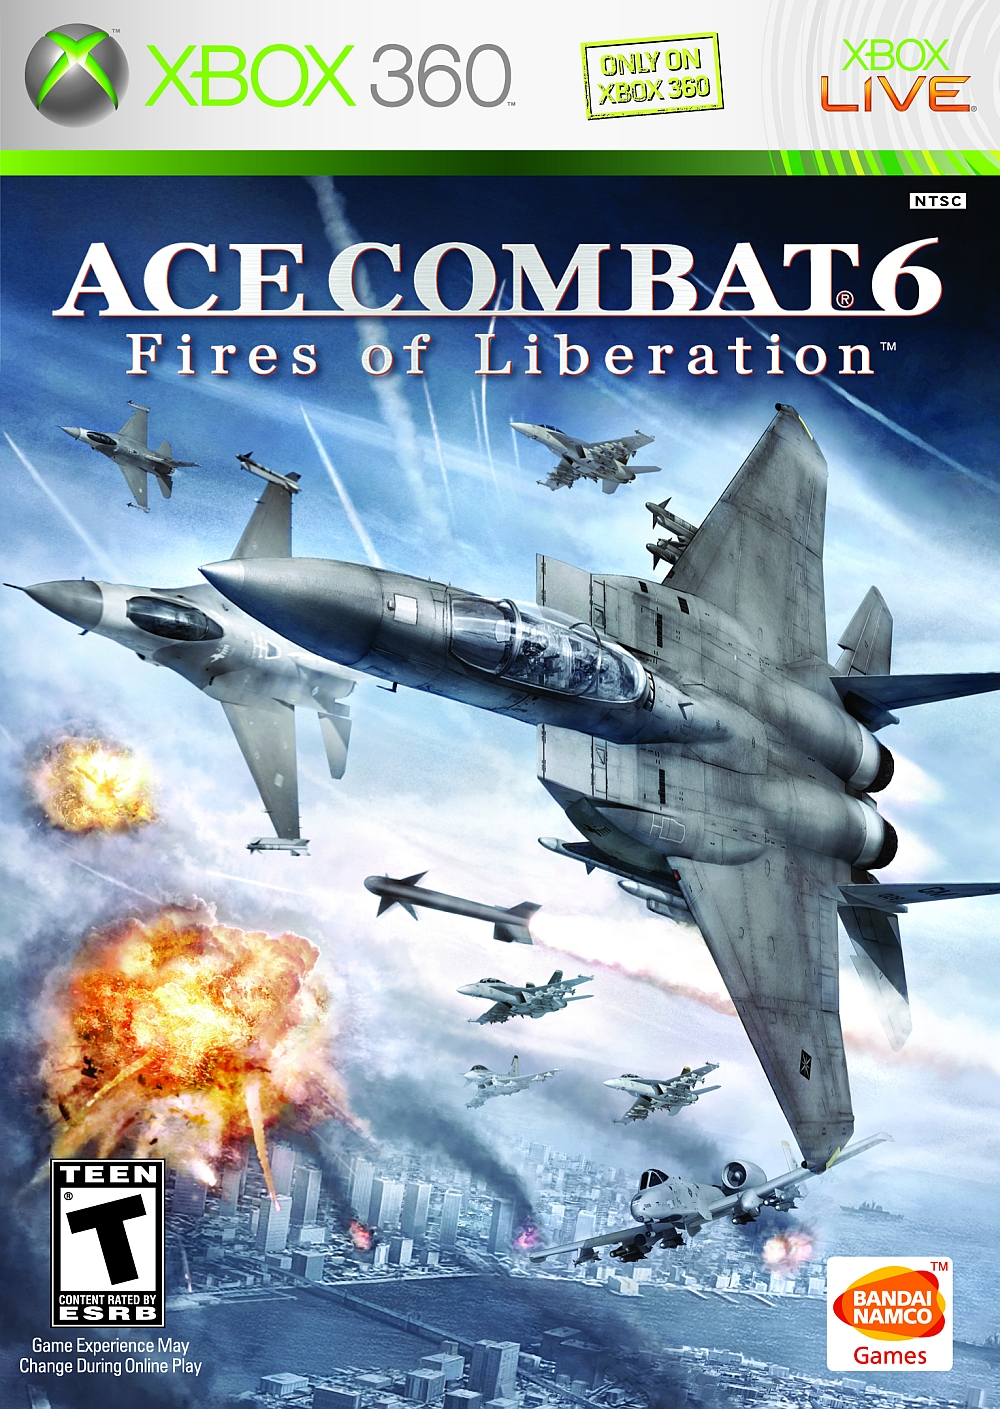 Ace Combat 6: Fires of Liberation Official Strategy Guide